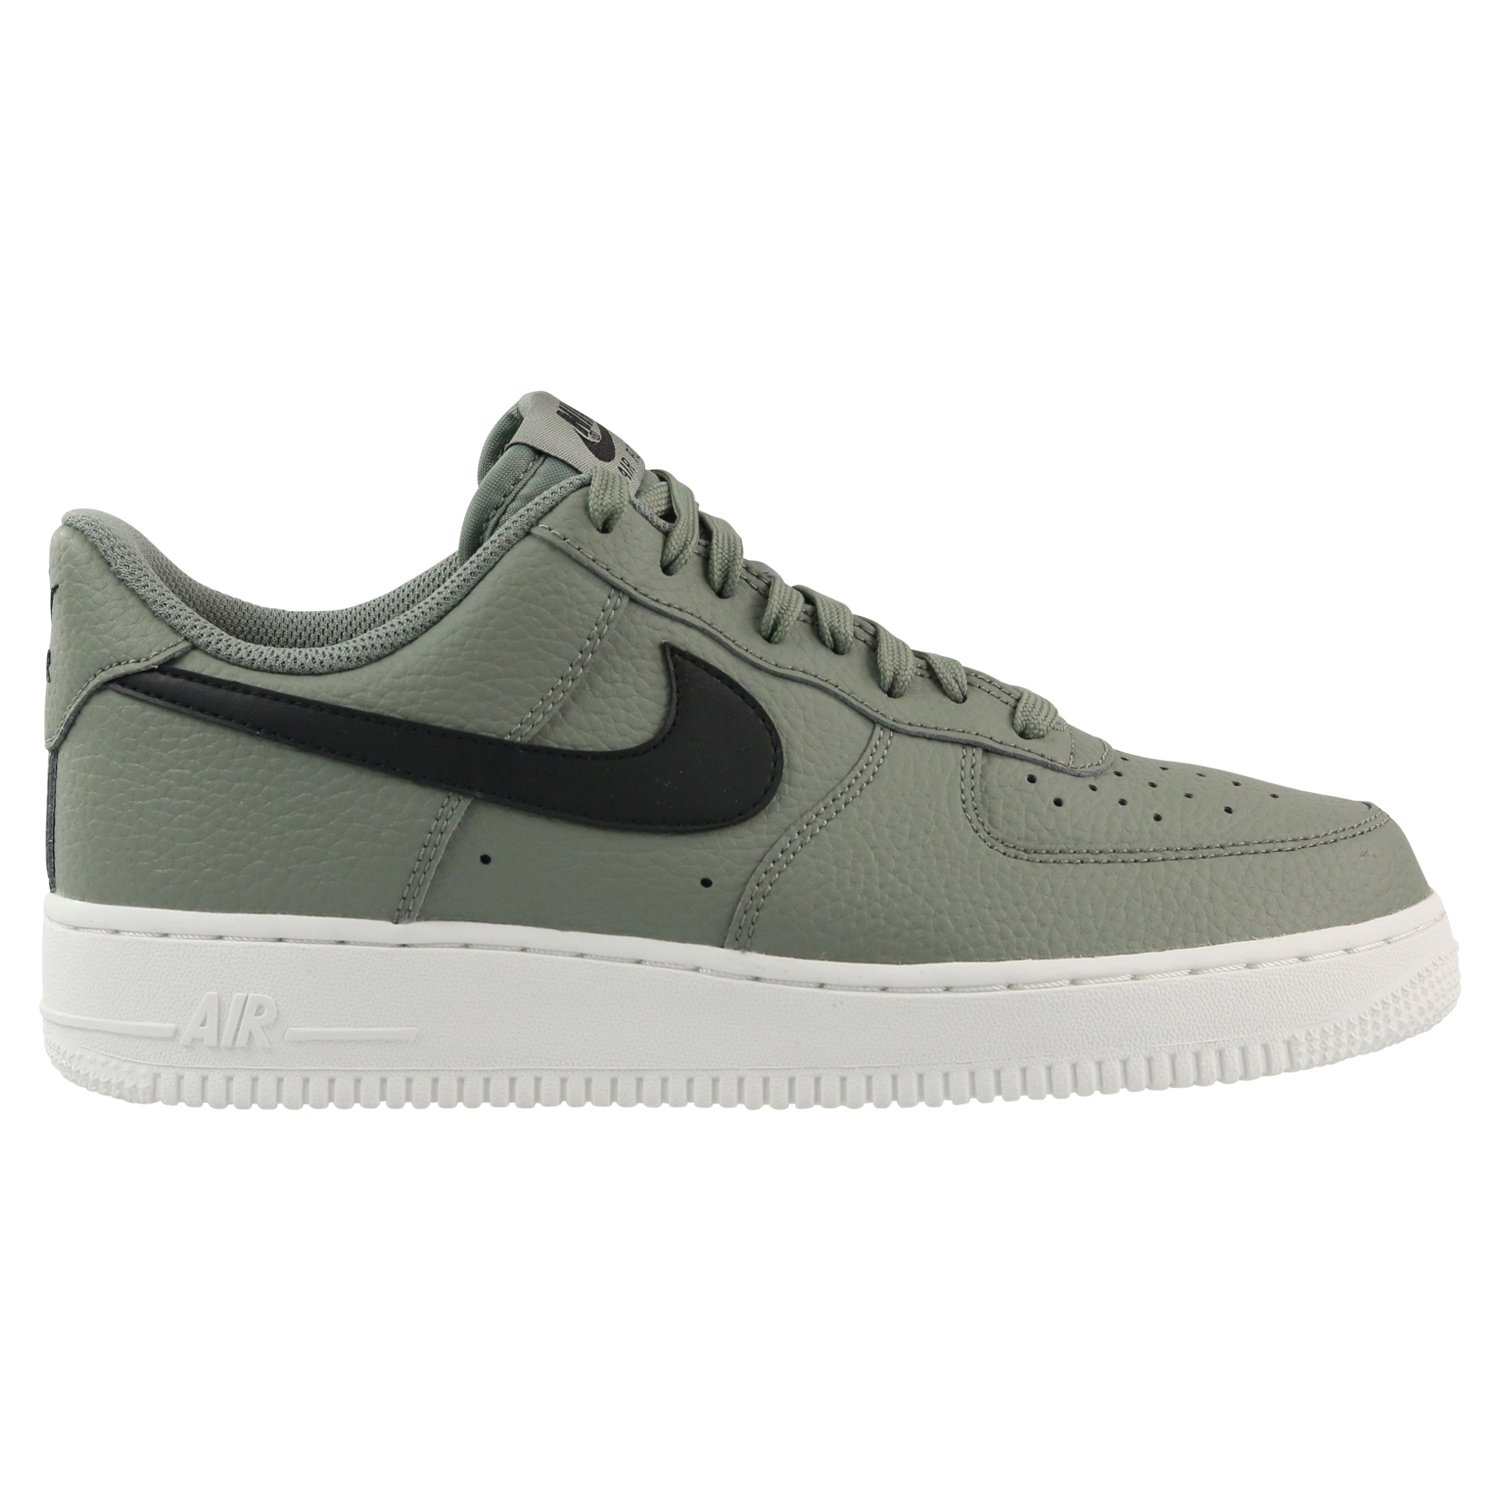 NIKE Men's Air Force 1 Low Dark StuccoBlackSummit White Leather Casual Shoes 7.5 D(M) US